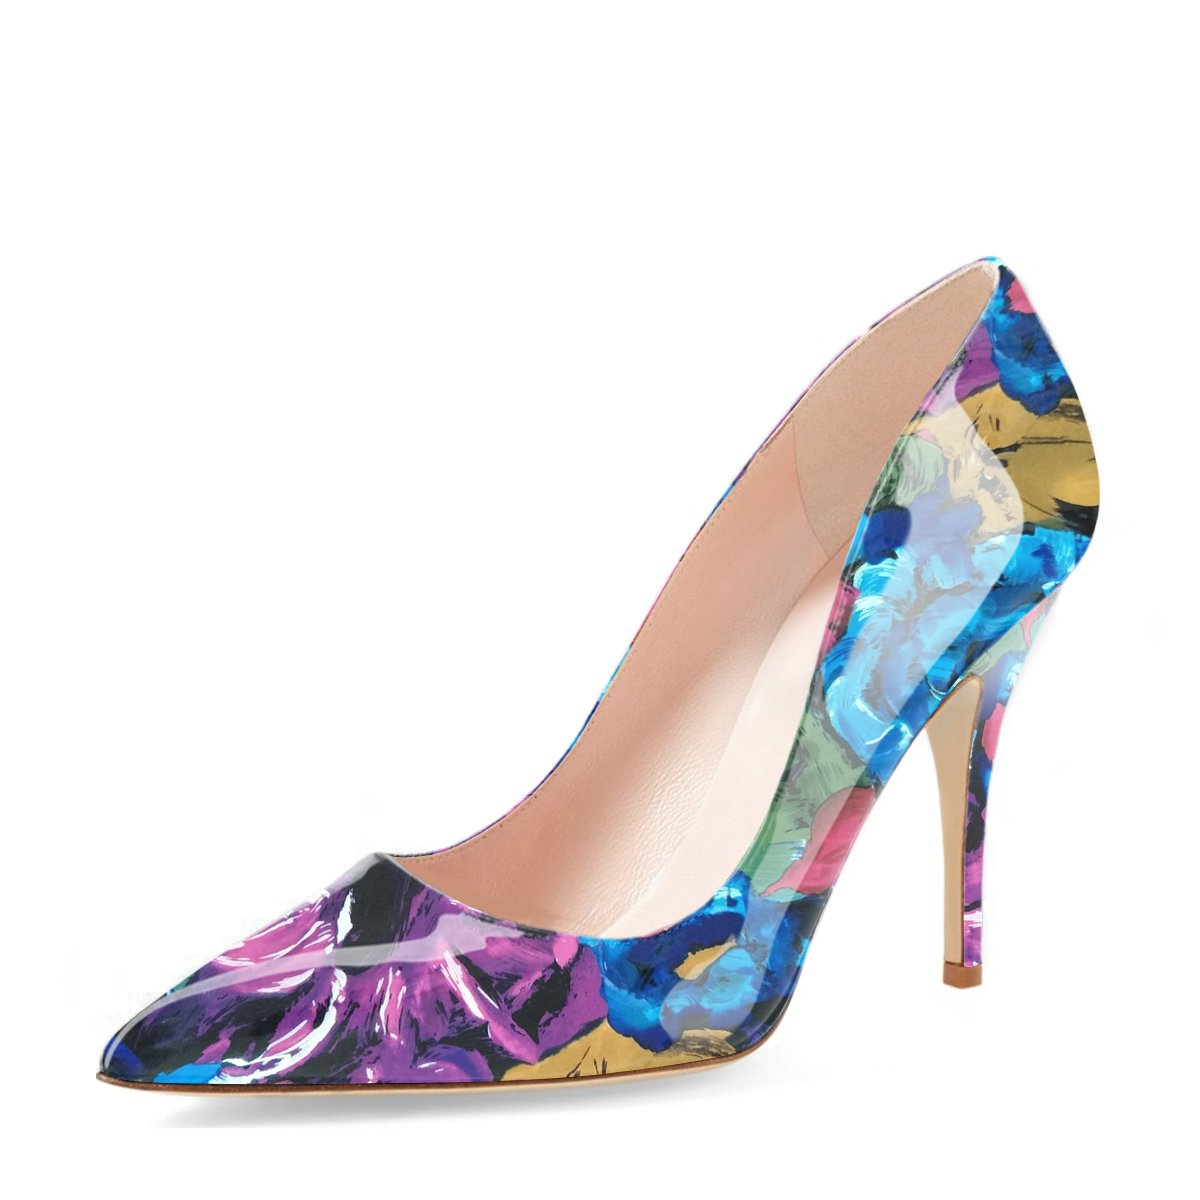 YDN Women's Chic Pointed Toe Mid Heel Pumps Polka Dots Slip on Stilettos Shoes for Party Purple Floral 9